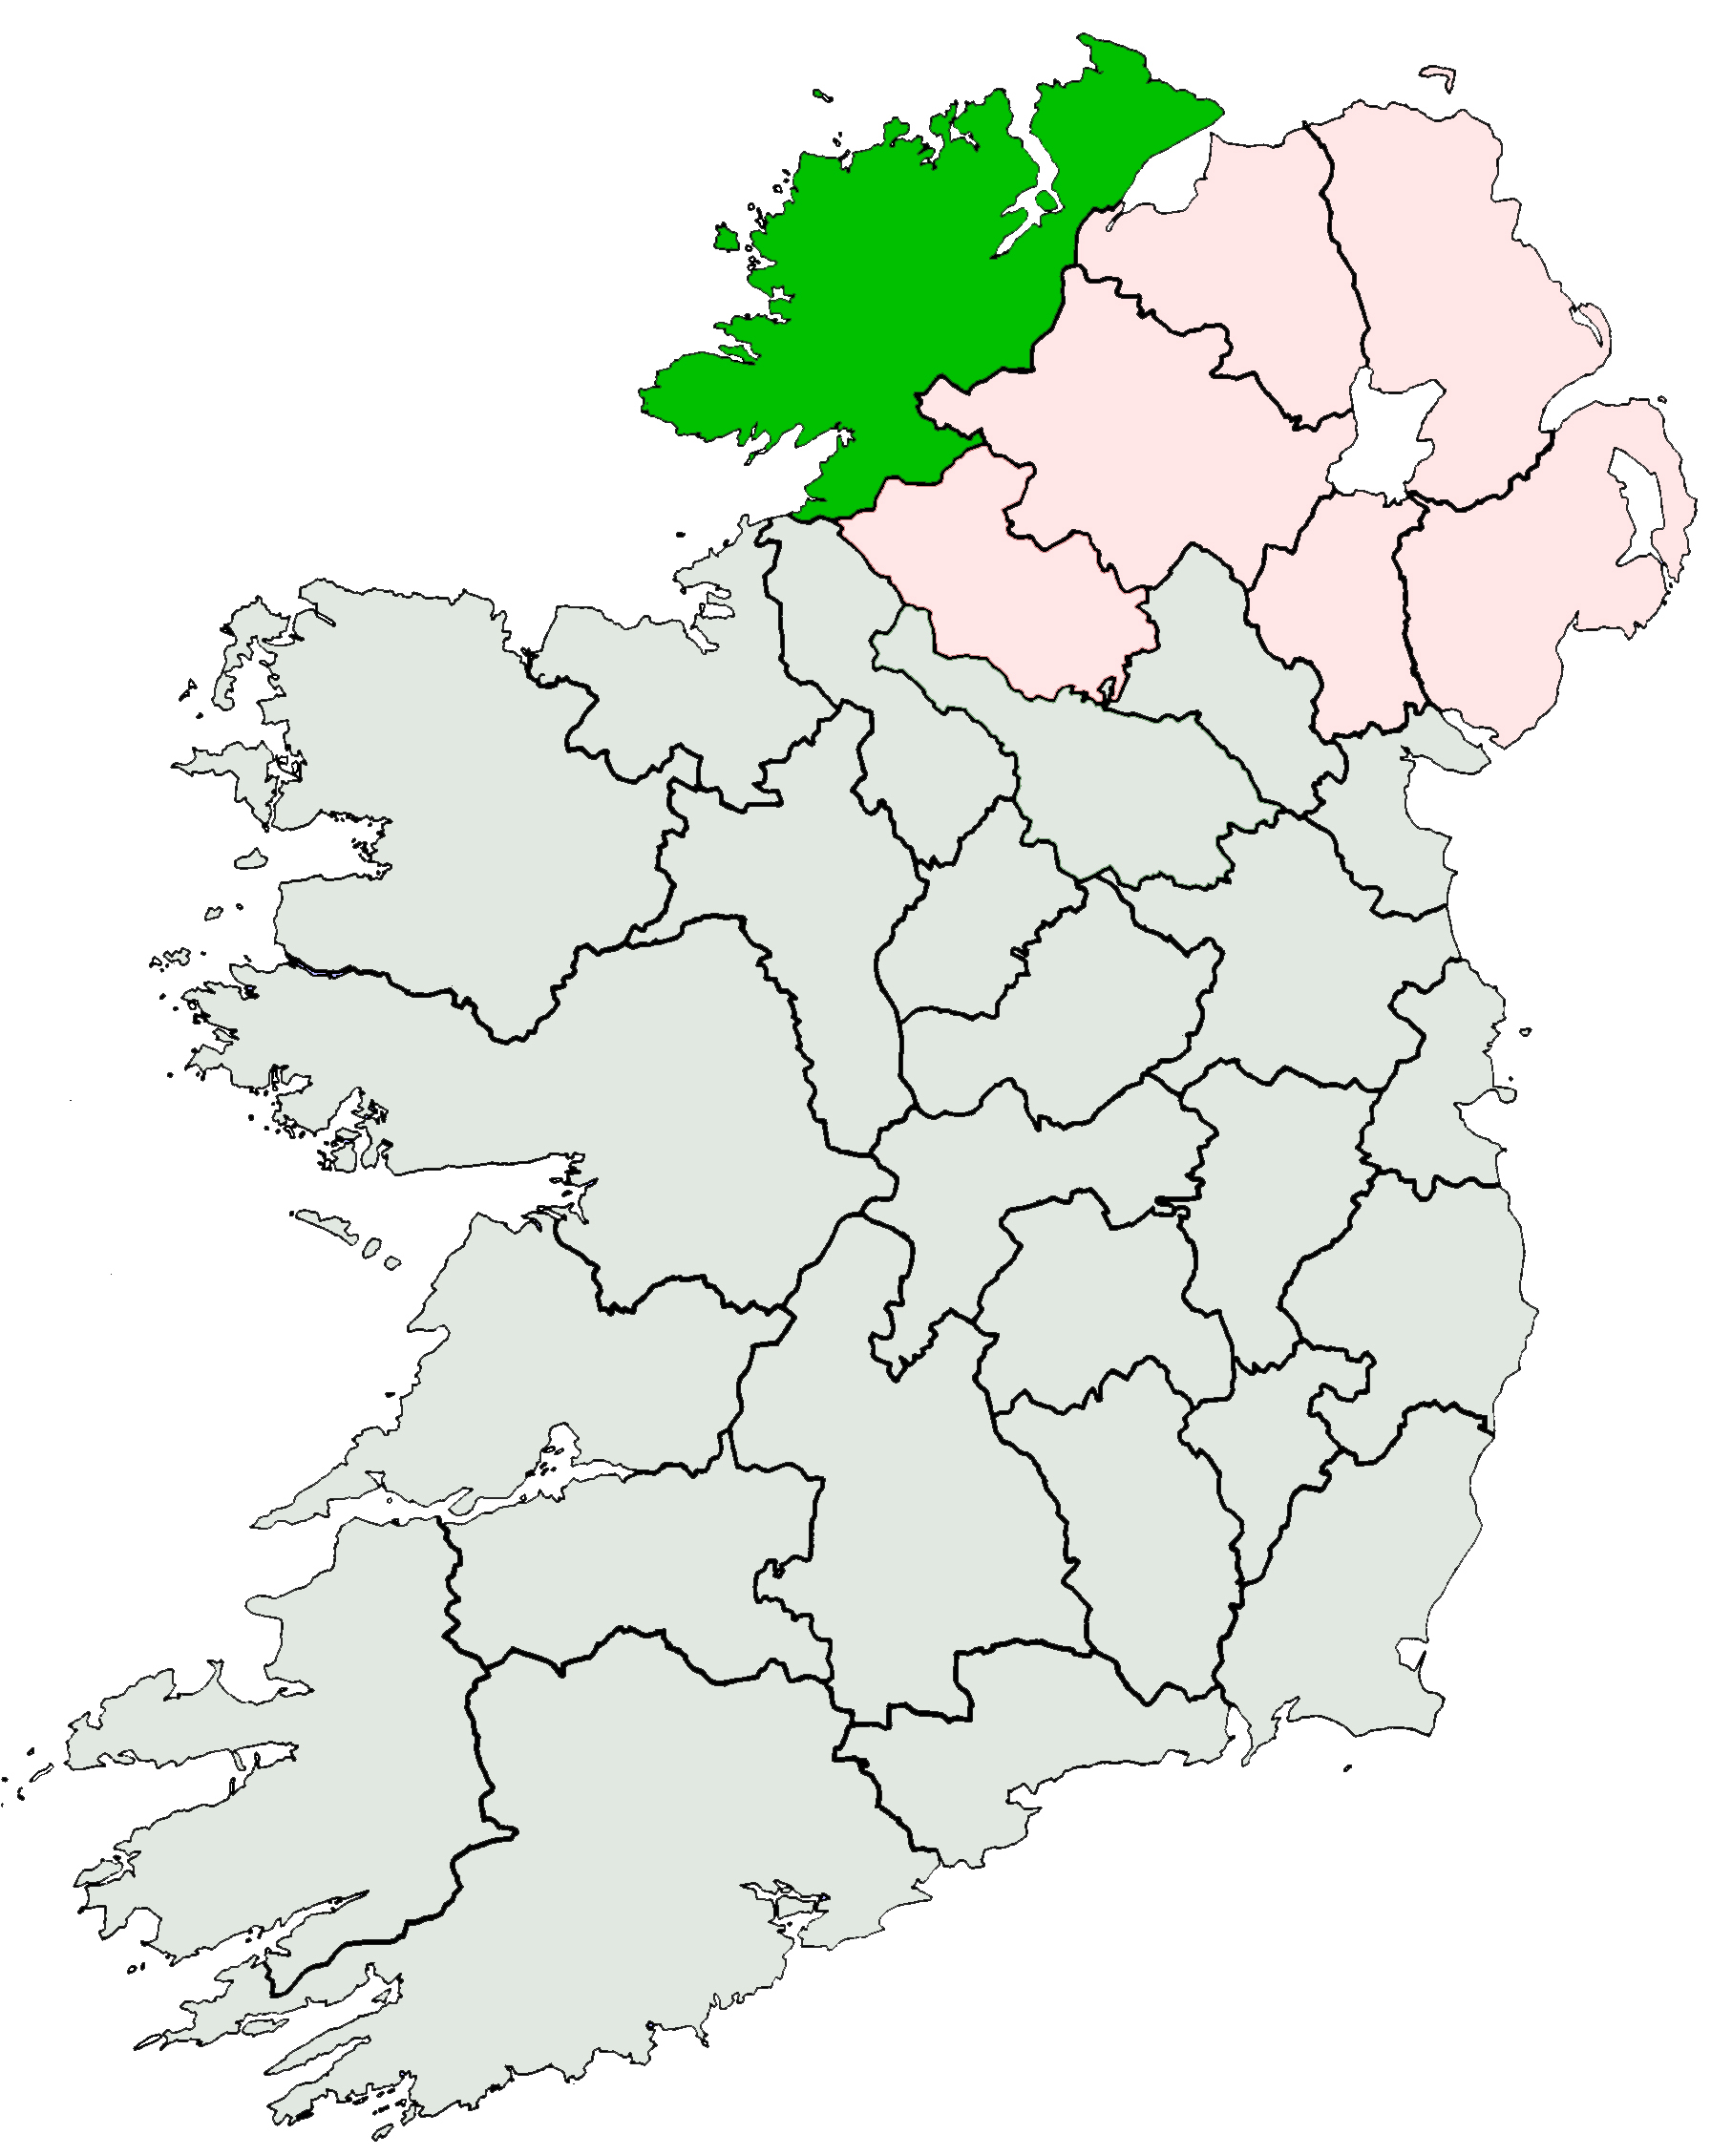 File:Ireland location Donegal.jpg - Wikimedia Commons